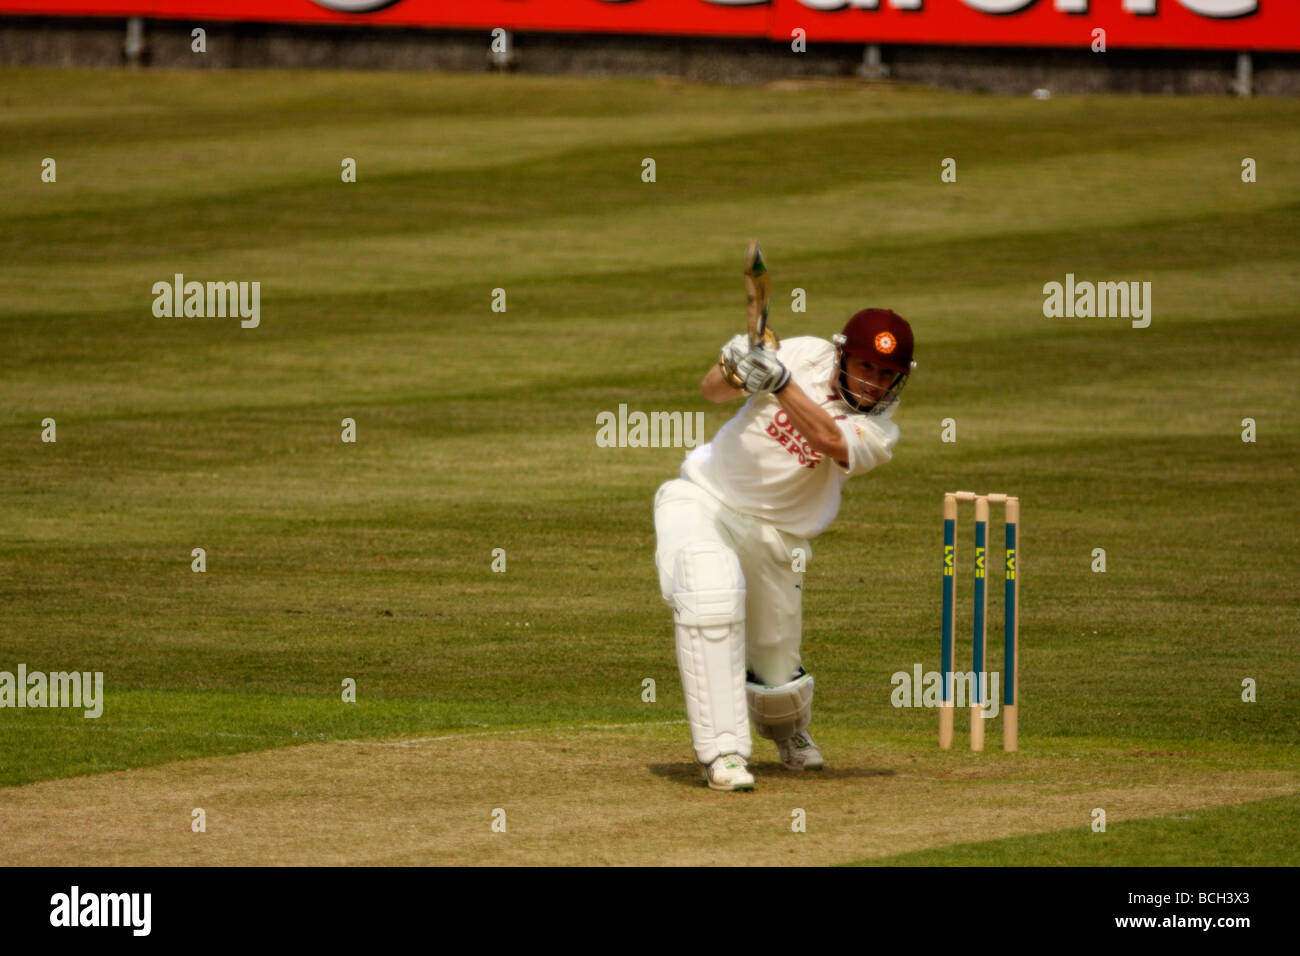 Niall O'Brien batting for Northants v Glamorgan in the County Championship at St. Helen's, Swansea. - Stock Image